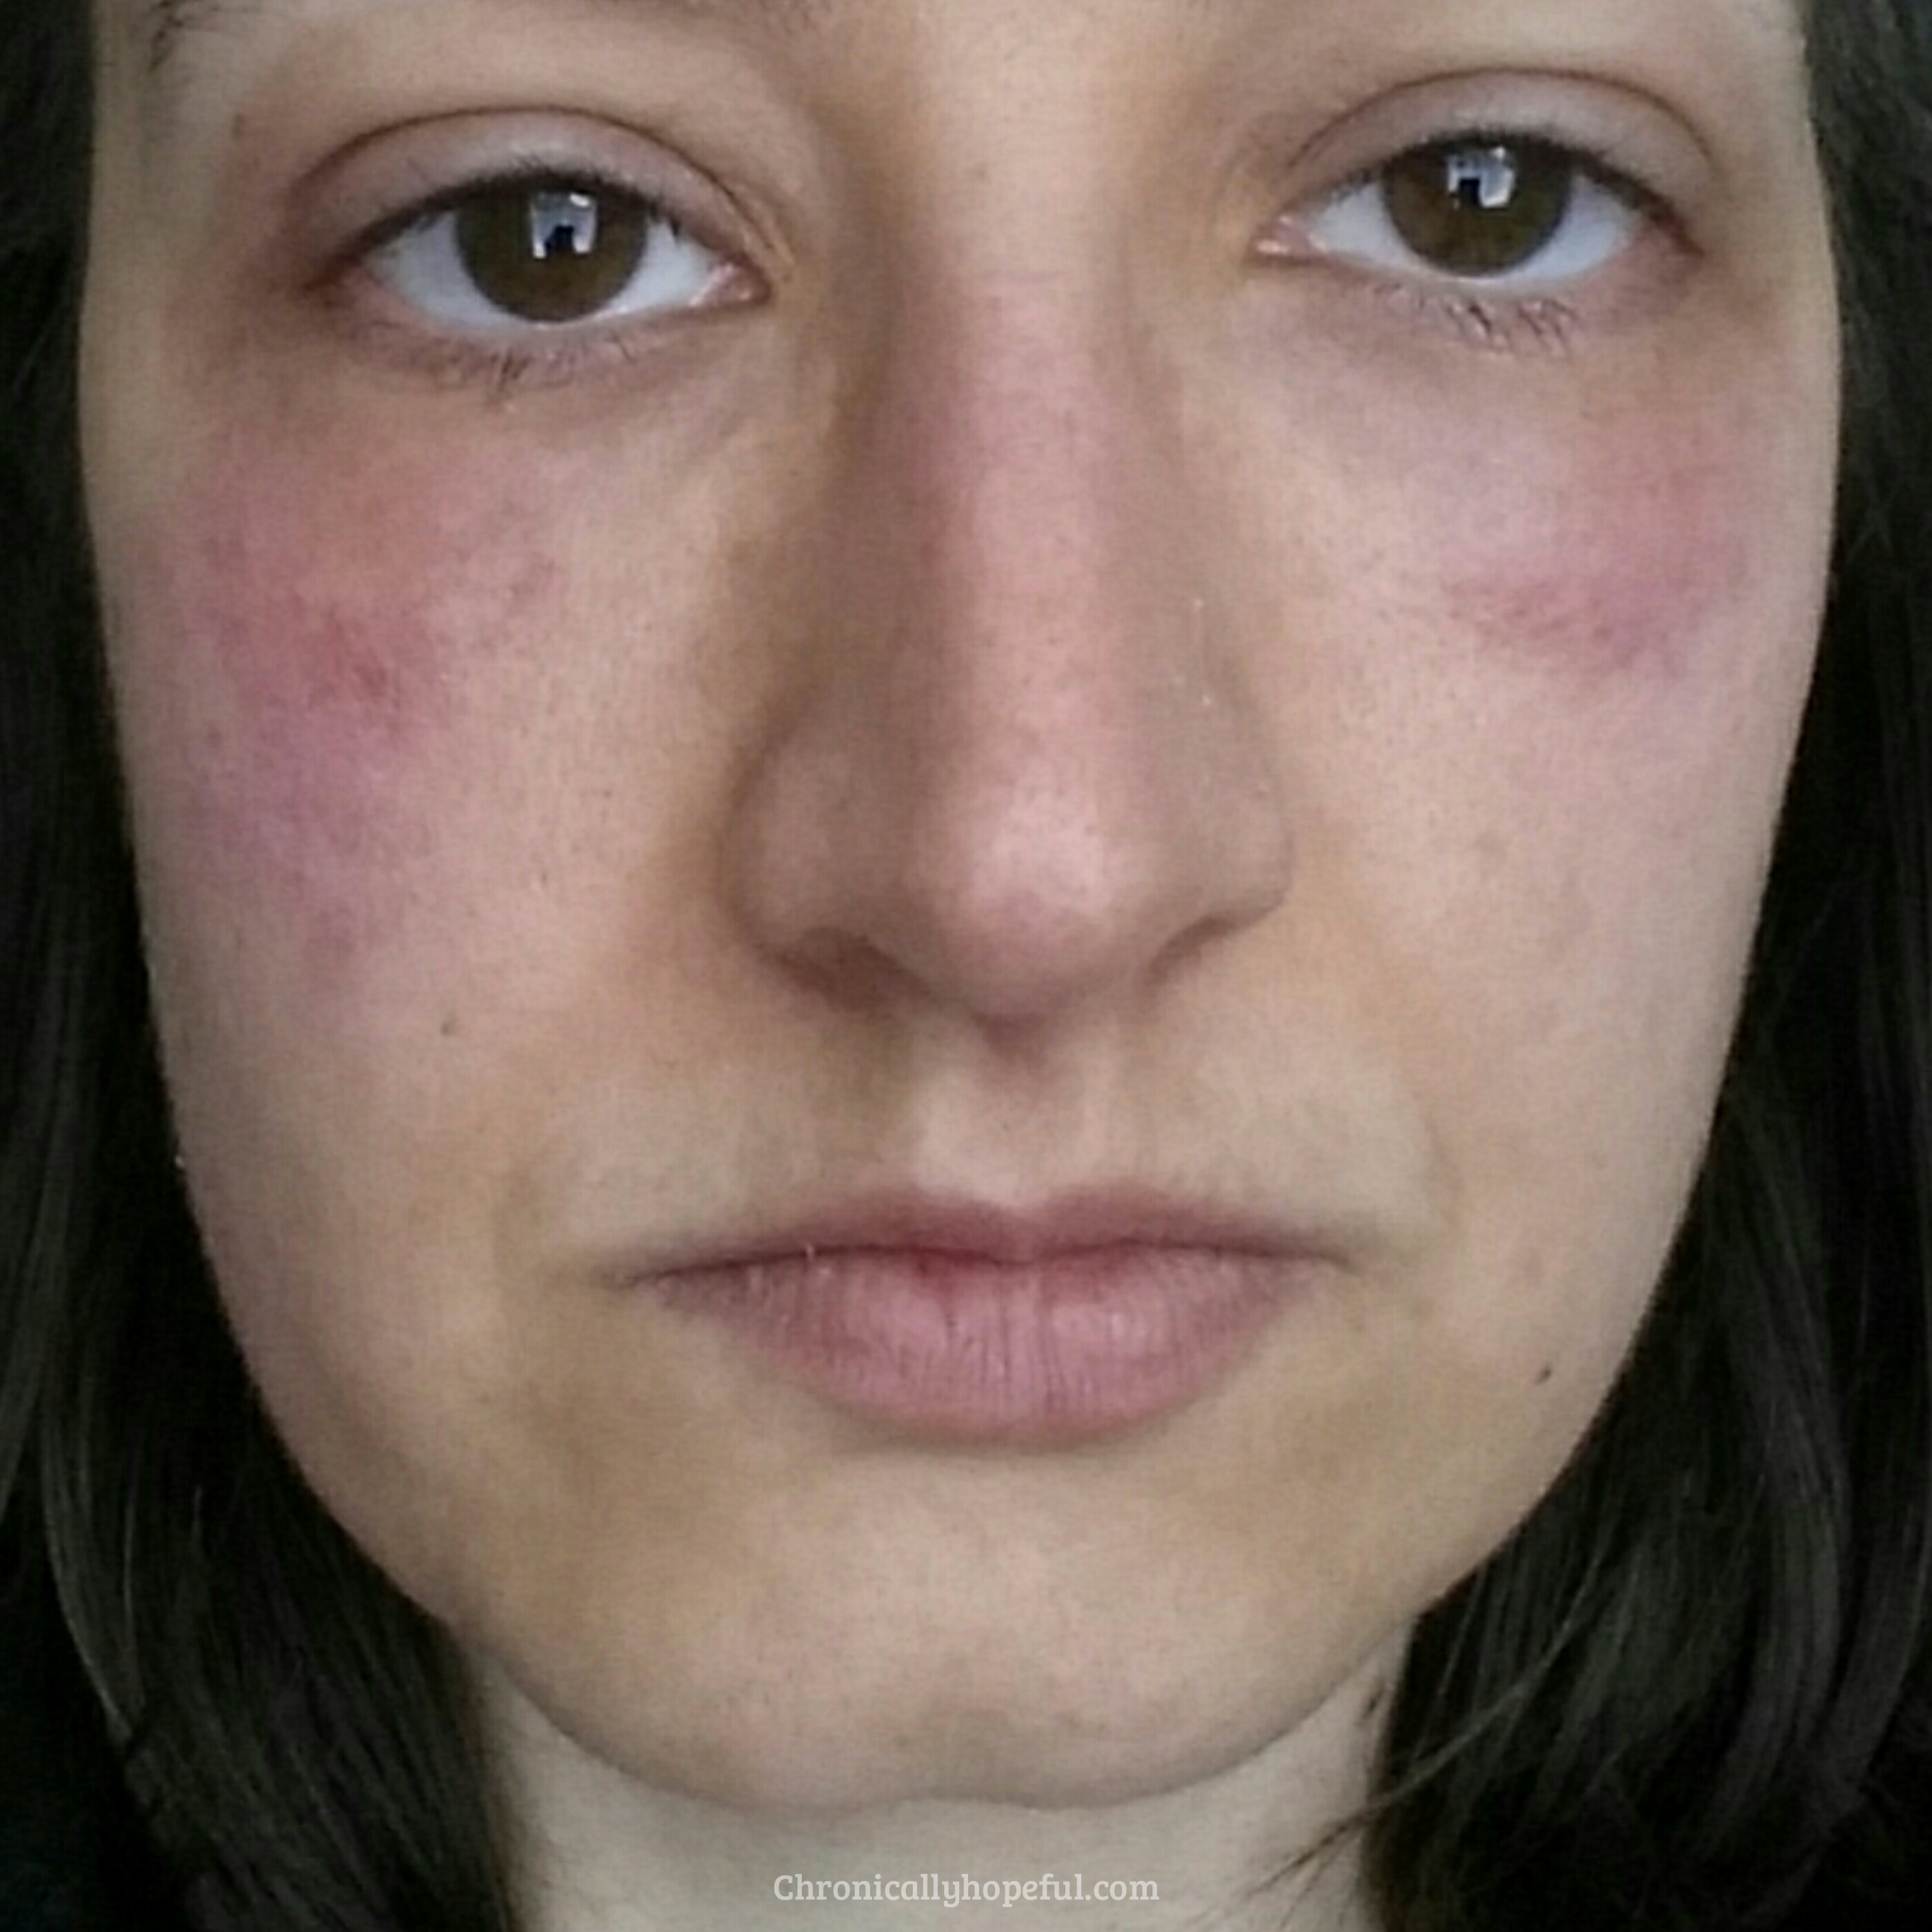 Rash On My Face, Histamine Intolerance, Chronically Hopeful